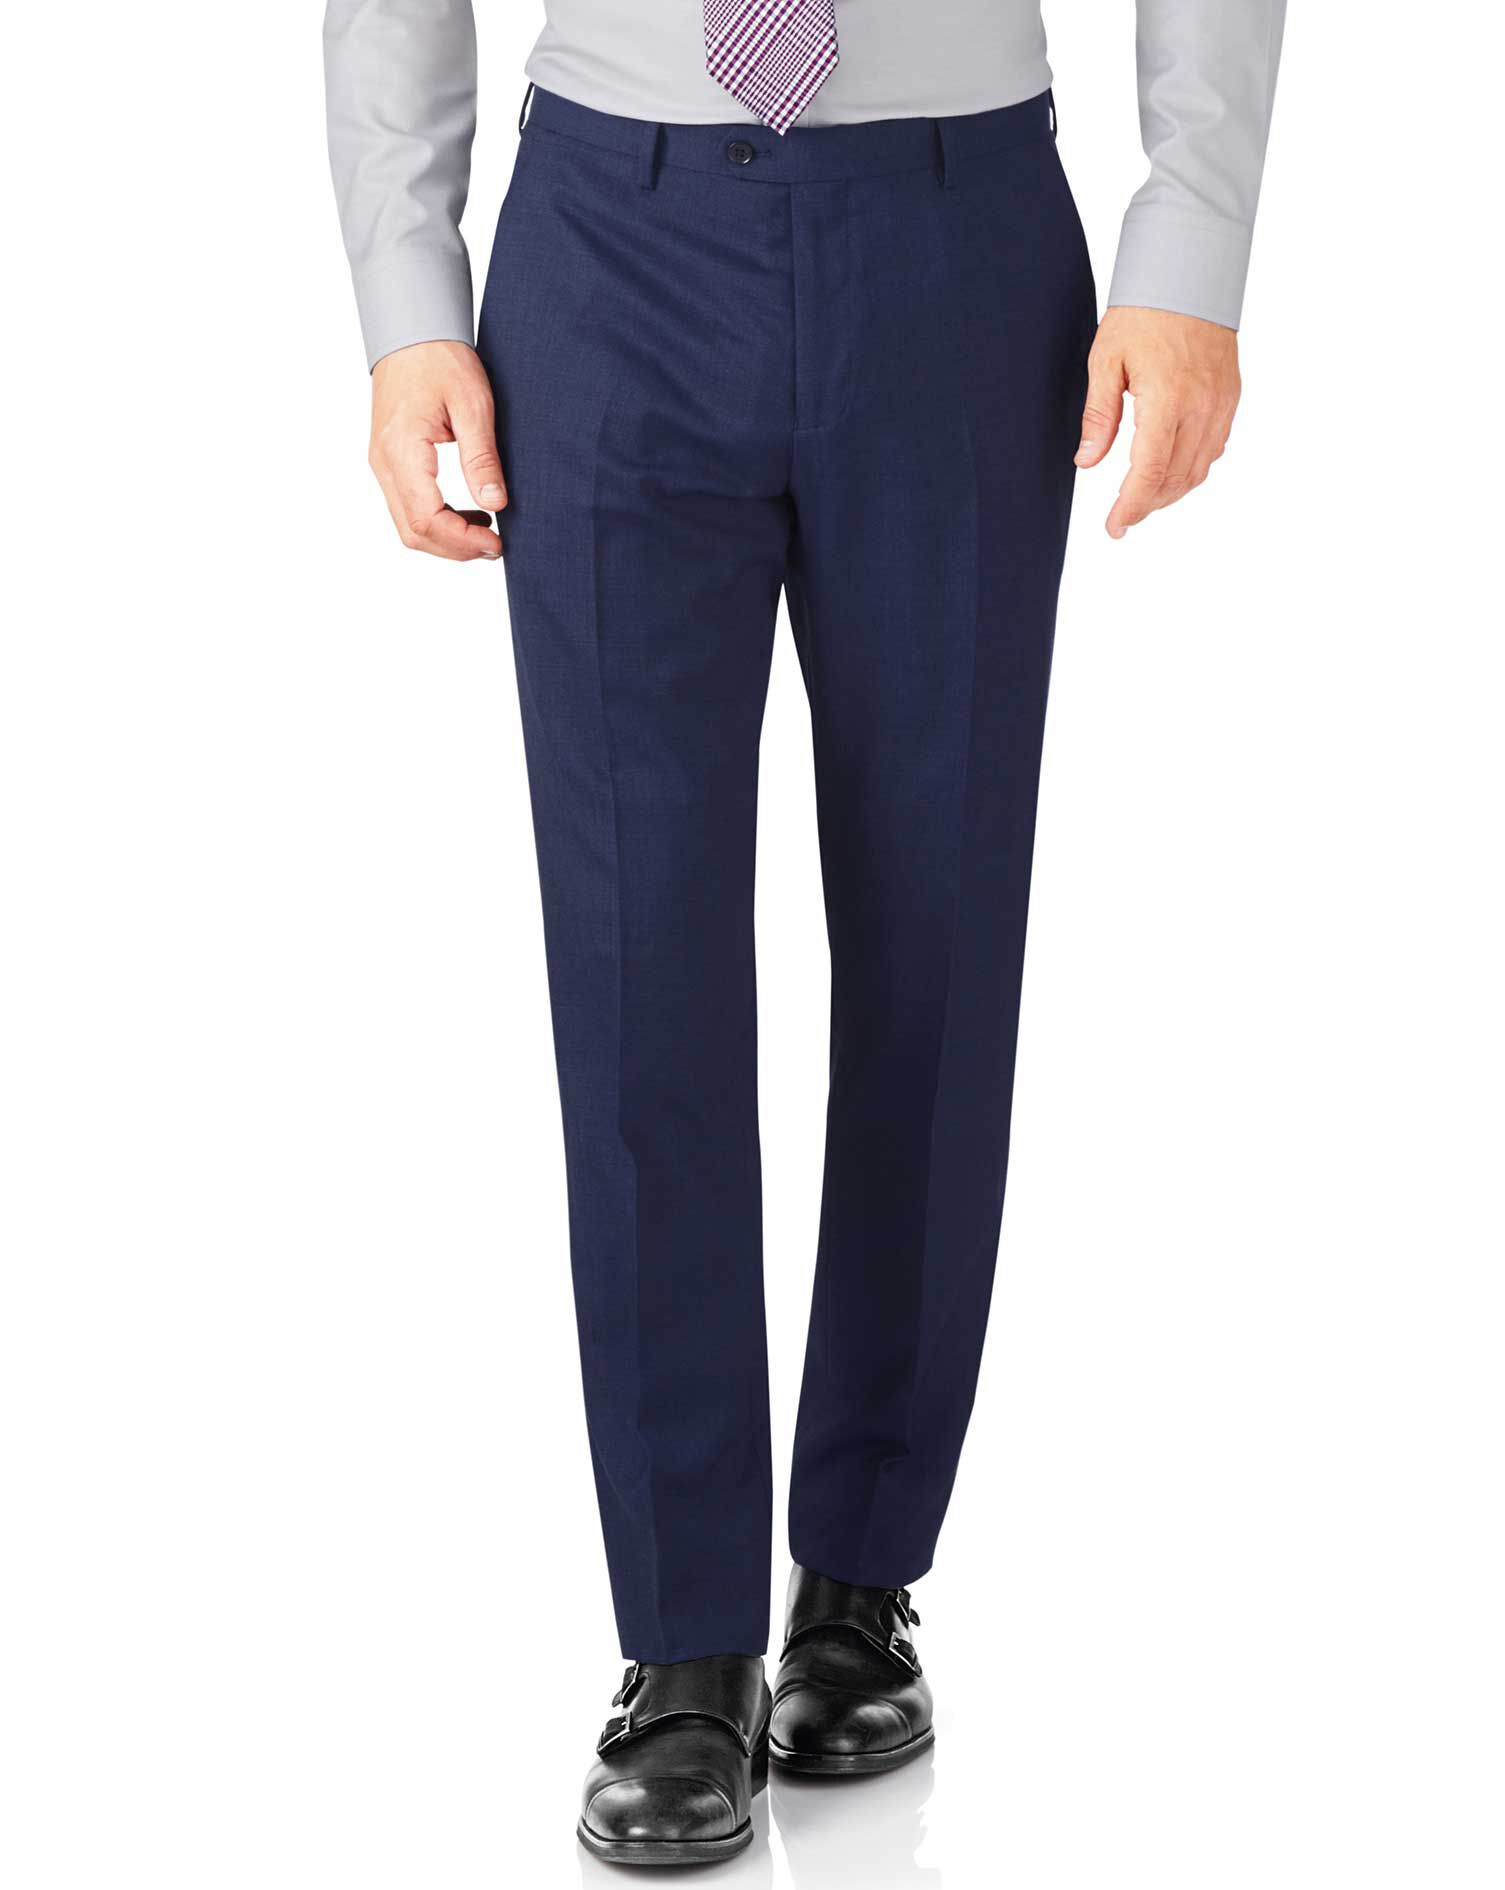 Indigo Slim Fit End-On-End Business Suit Trouser Size W38 L32 by Charles Tyrwhitt